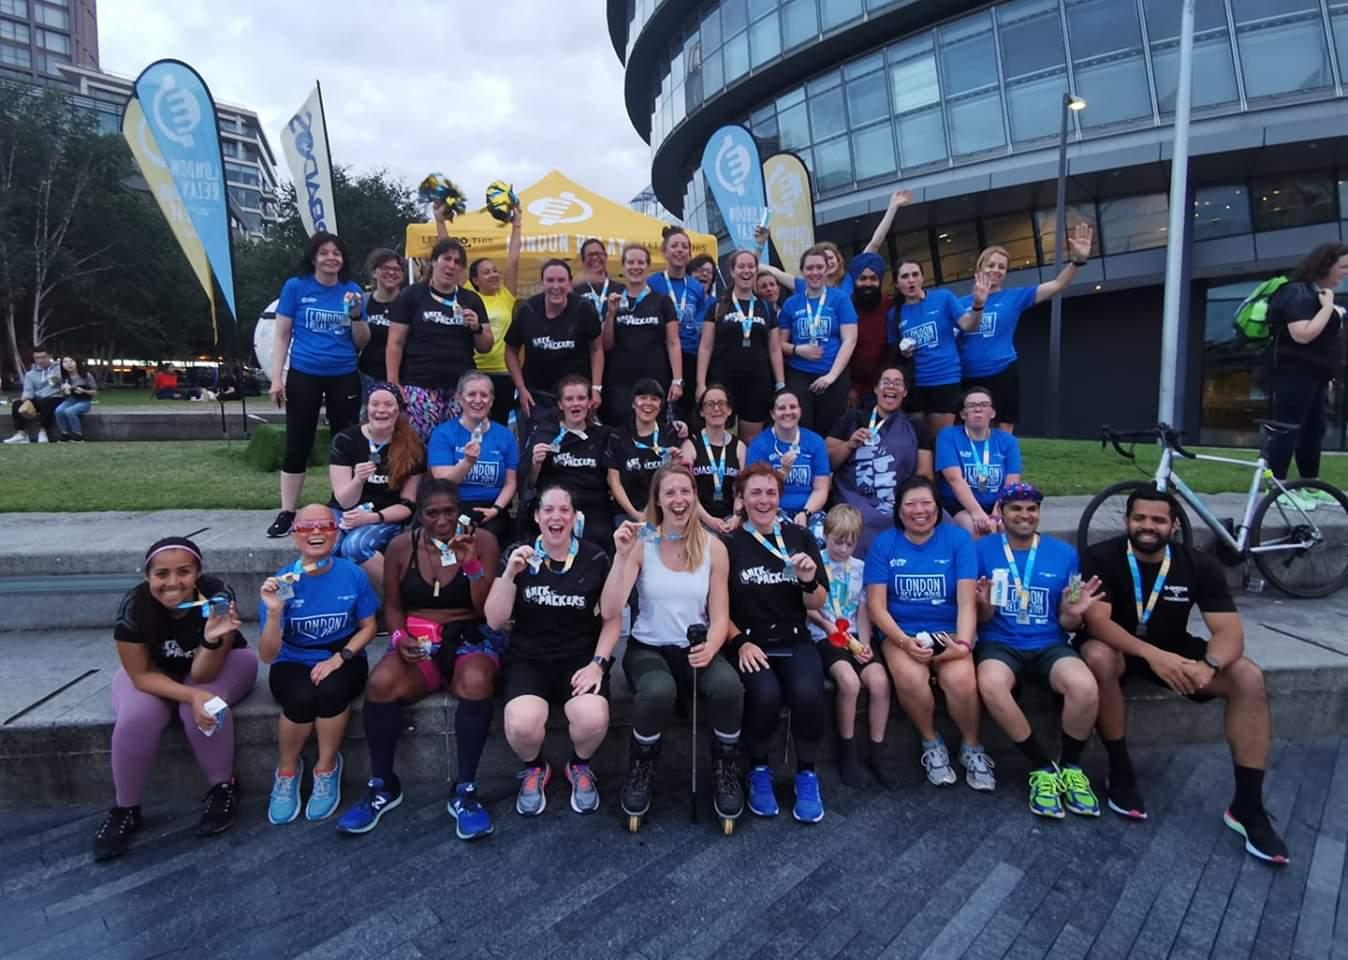 The London Relay 2019